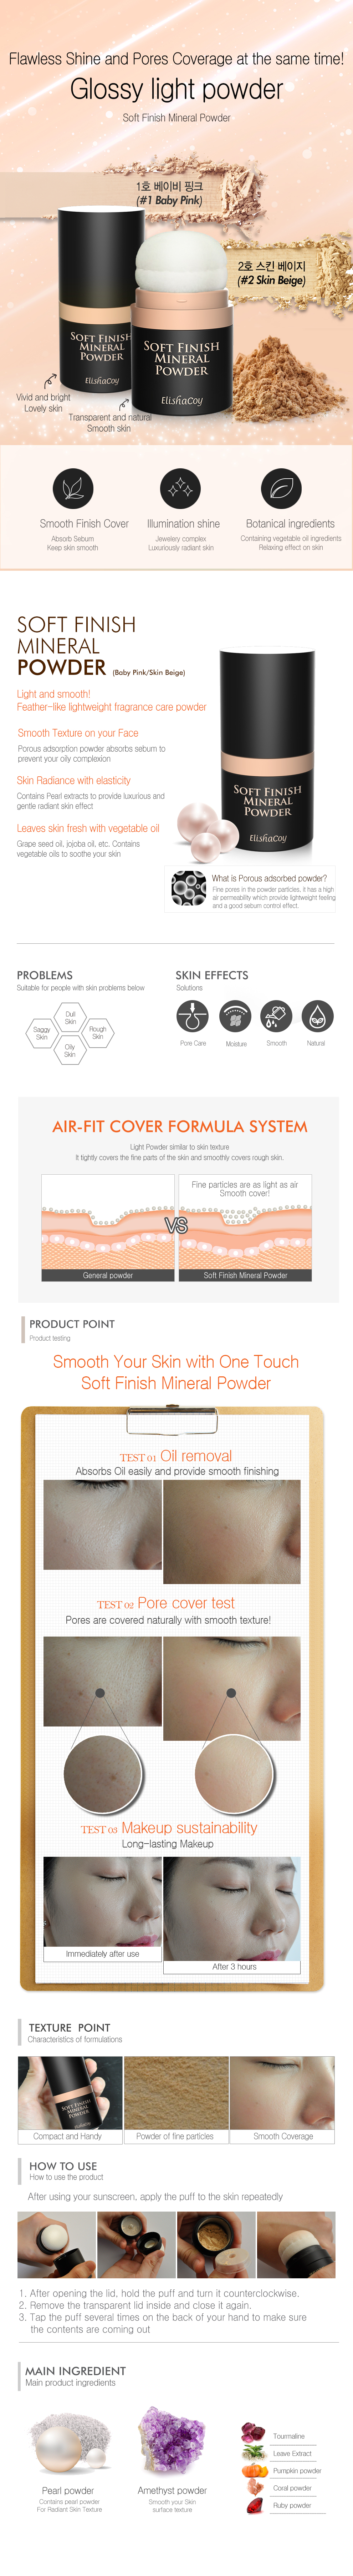 Soft Finish Mineral Powder #1 Skin Beige